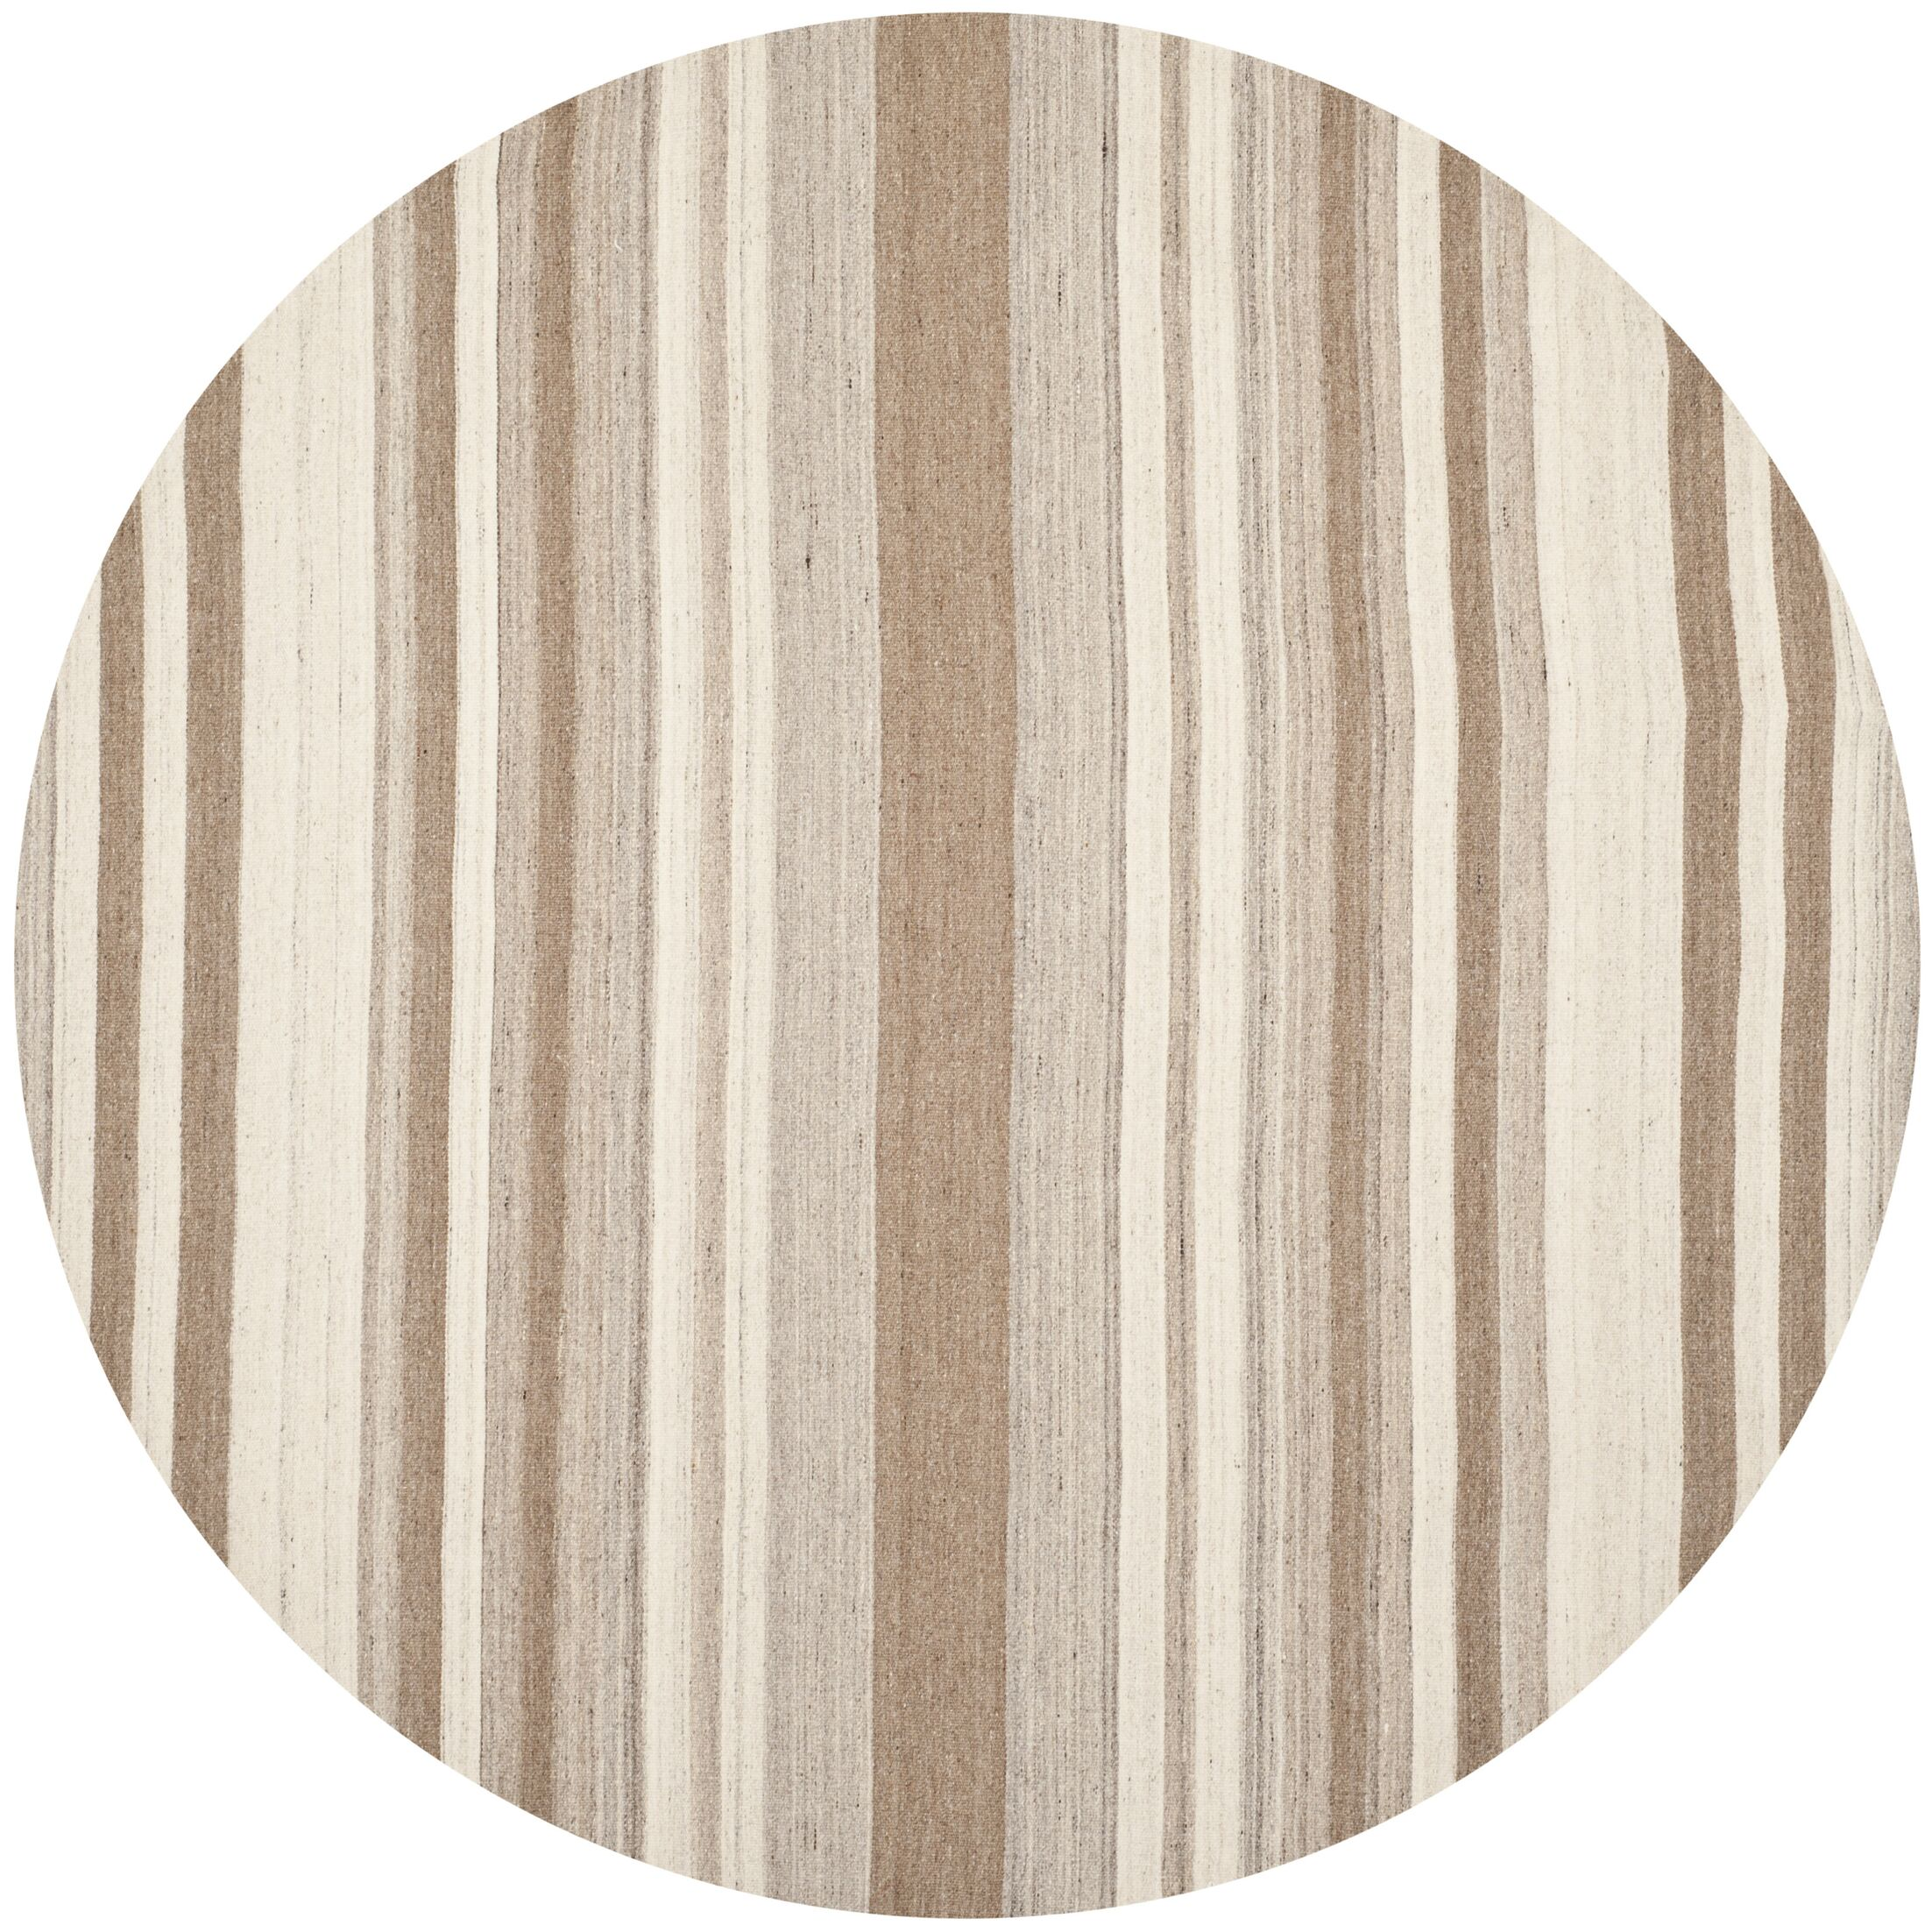 Dhurries Wool Natural/Camel Area Rug Rug Size: Round 7'